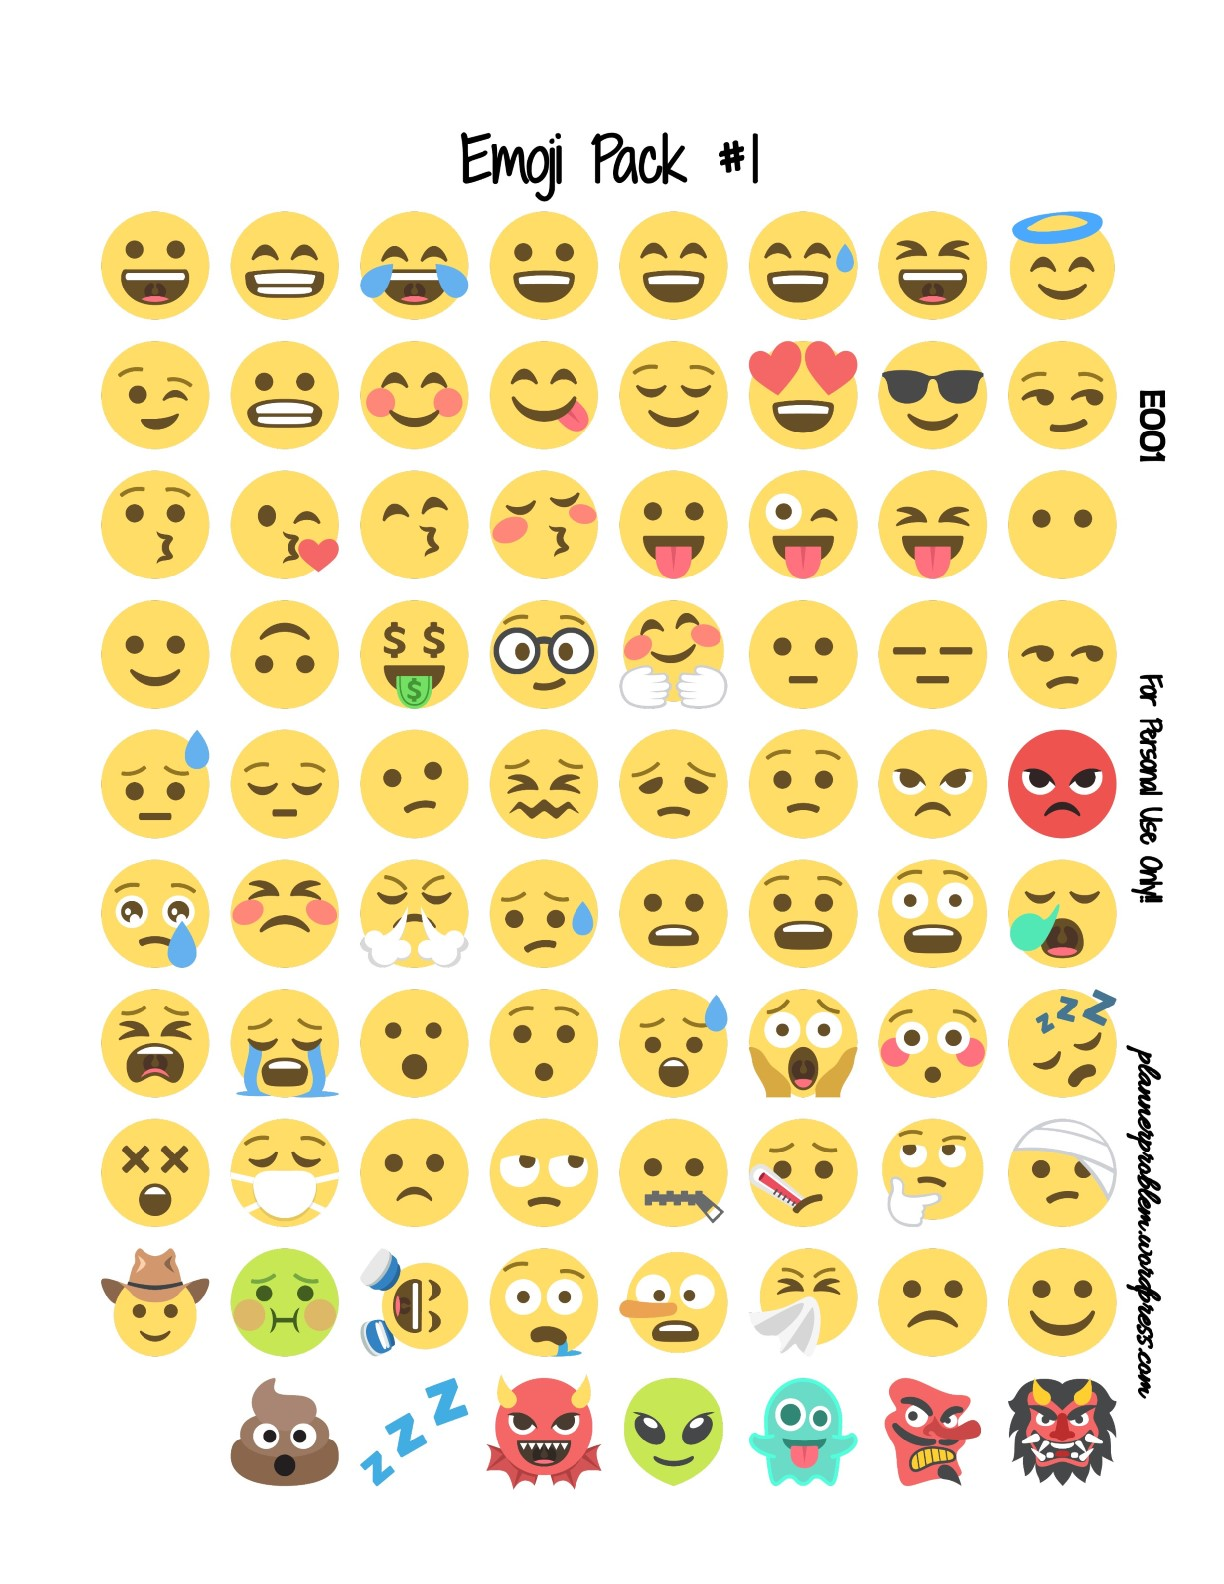 photograph relating to Printable Emojis called Emoji Pack #1 Totally free Printable Planner Stickers PlannerProblem